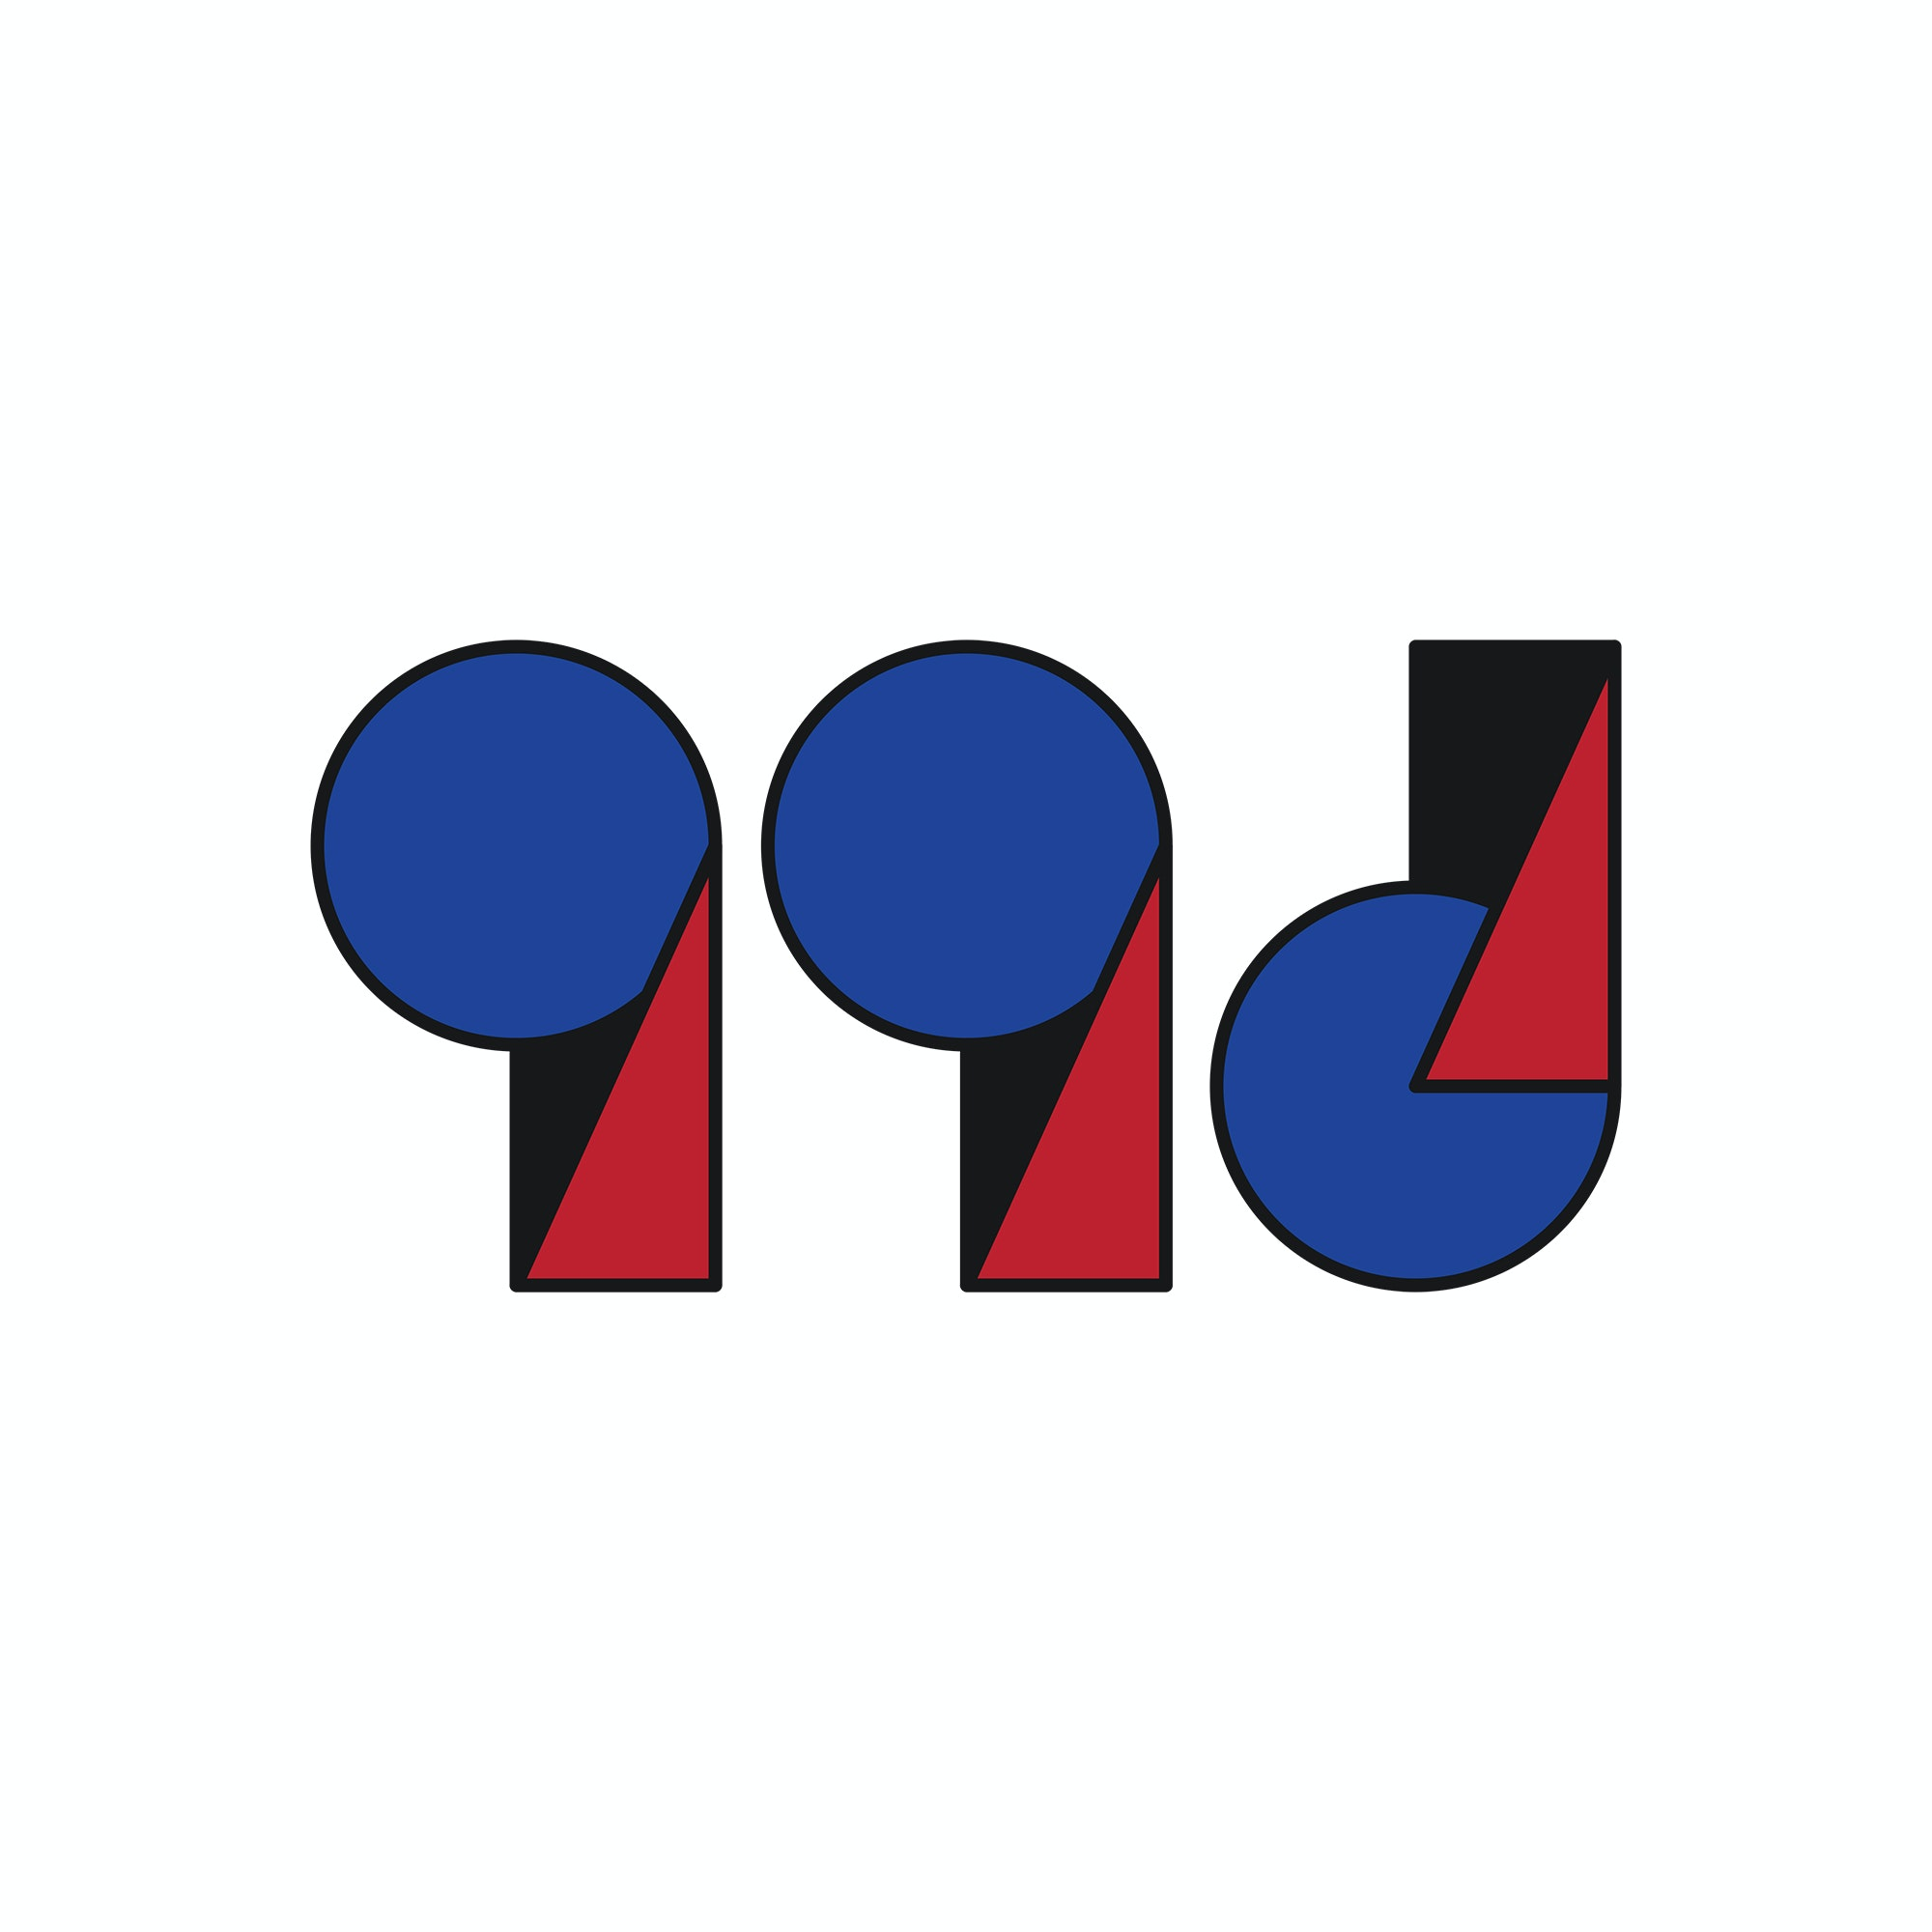 99designs logo in Bauhaus design style